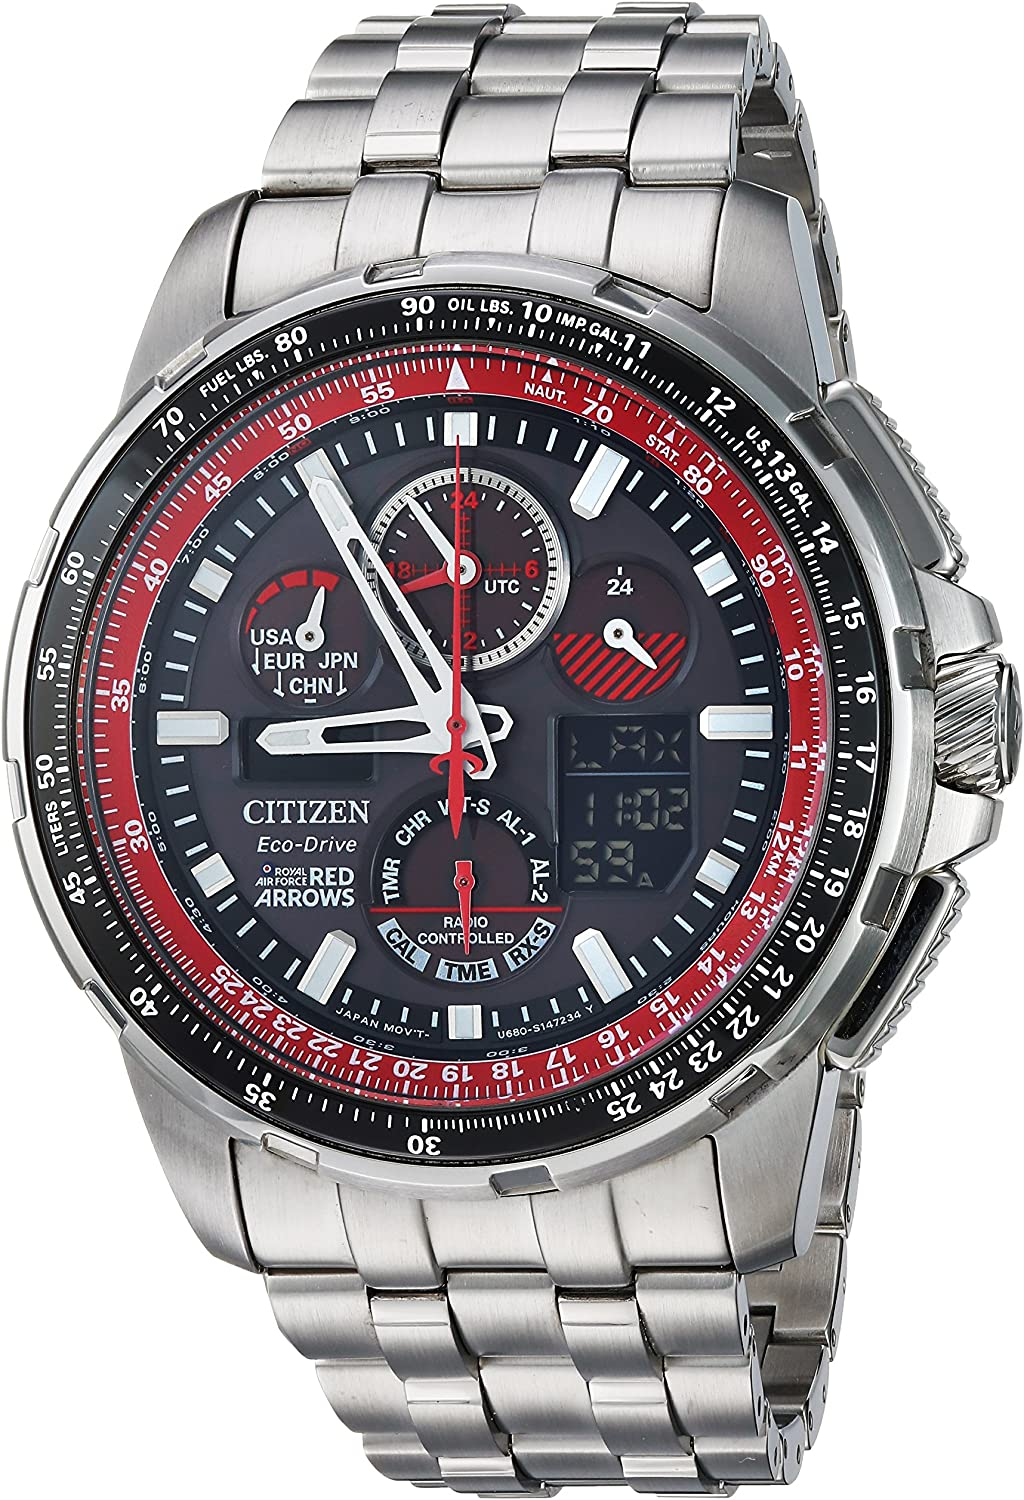 Citizen Men s Eco-Drive Japanese-Quartz Aviator Watch with Stainless-Steel Strap, Silver, 23 Model JY8059-57E